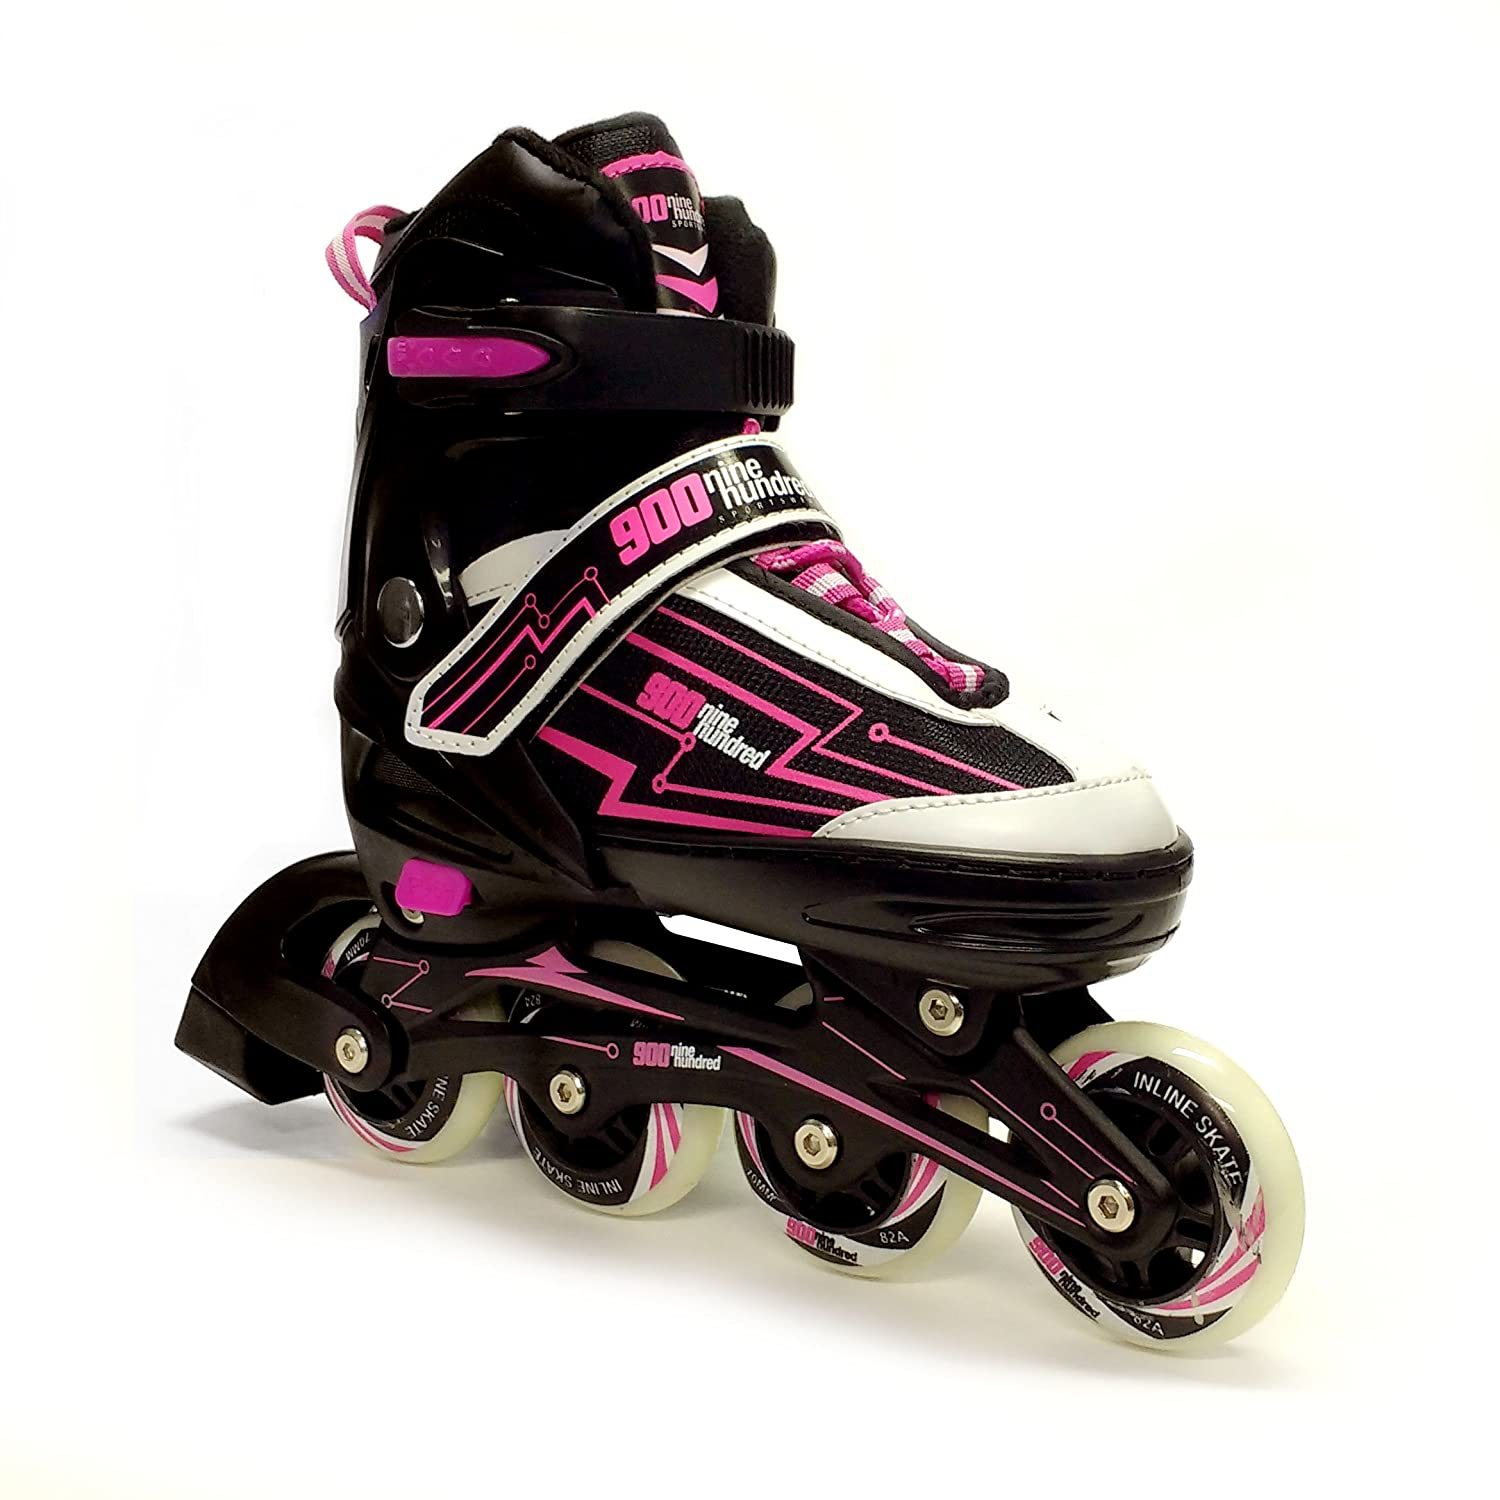 Nine Hundred Adjustable Rollerblades for Kids//Women//Men//Adult//Boys//Girls-Inline Roller Skate-Black//Pink or Black//Green.Fitness Performance Inline Blades Skates.